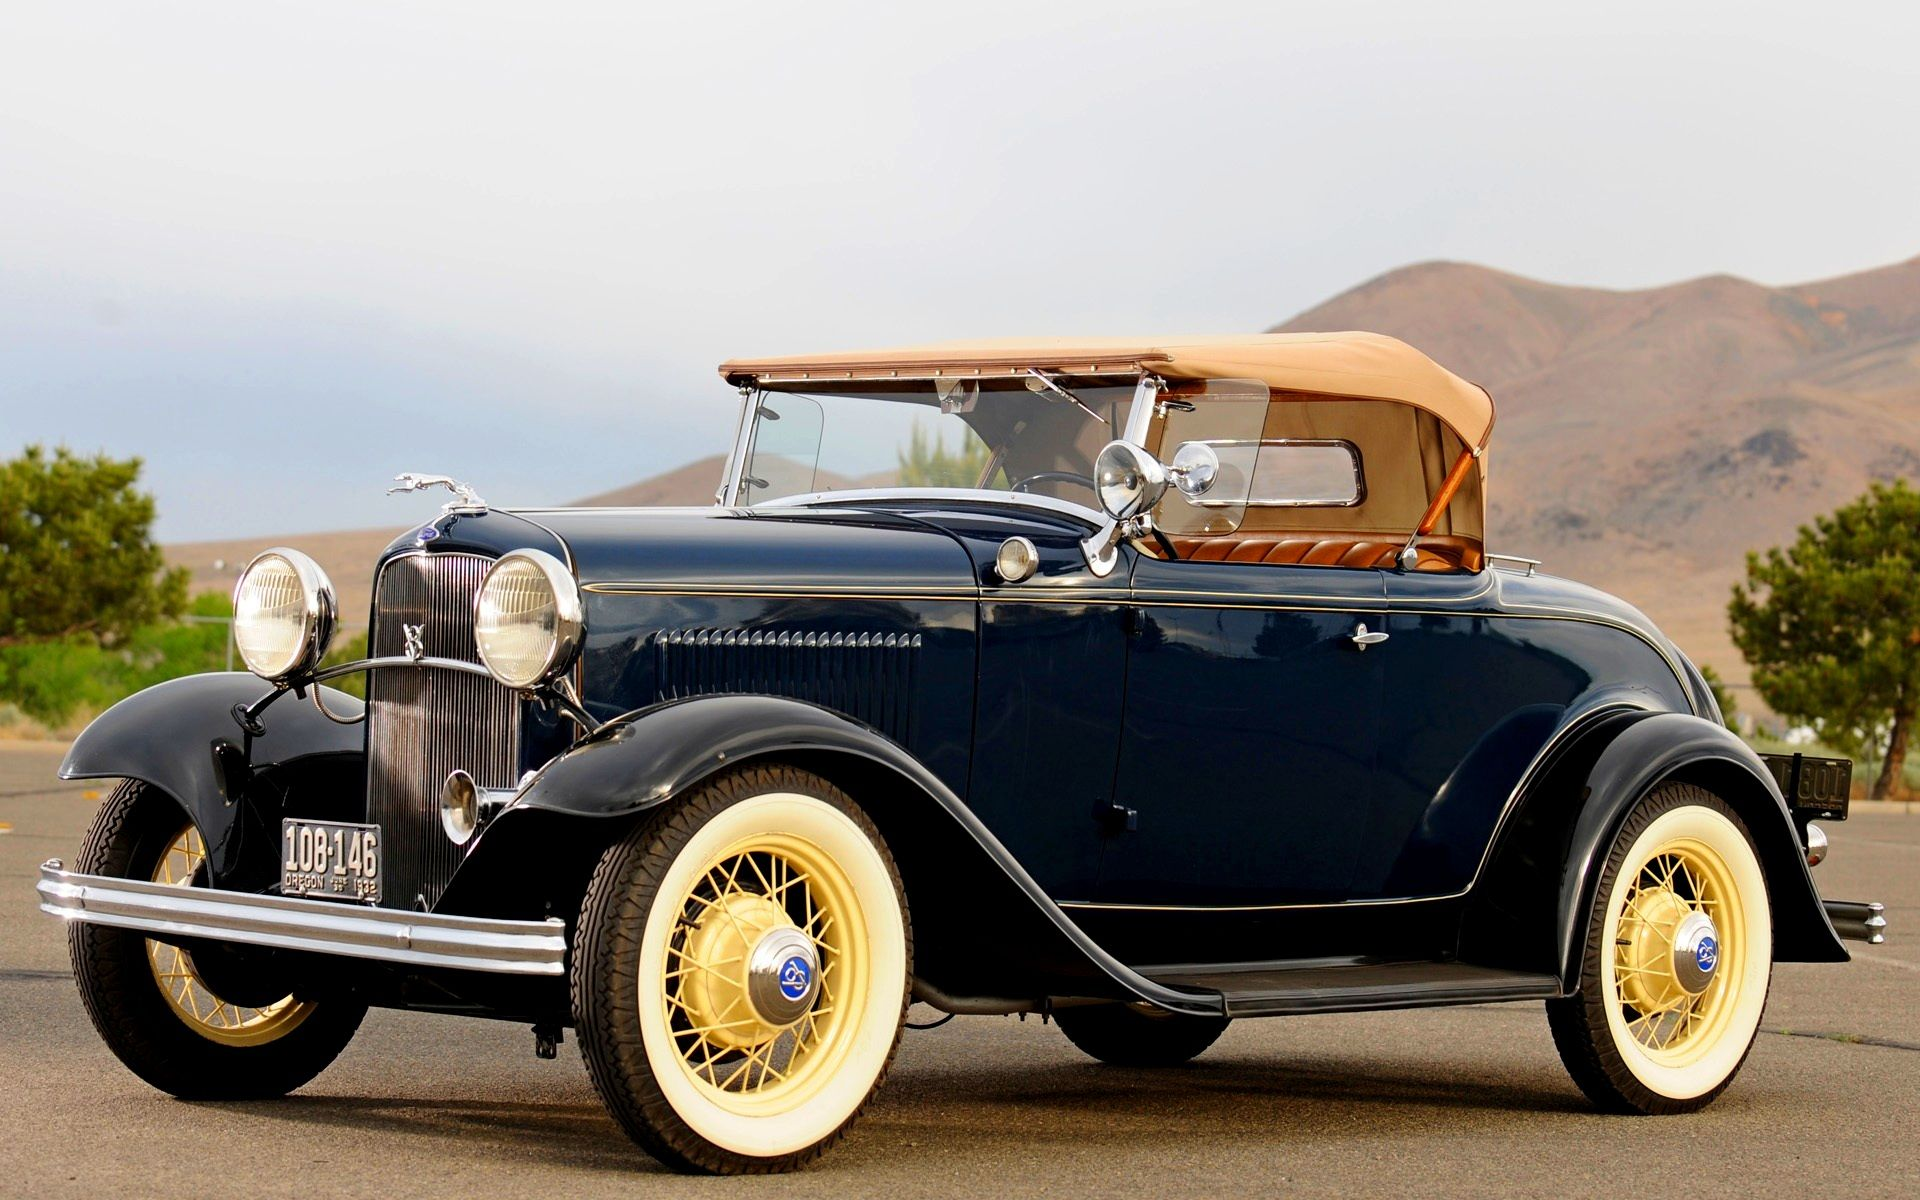 1932 Ford Roadster | Cars of the 1930s. | Pinterest | 1932 ford ...